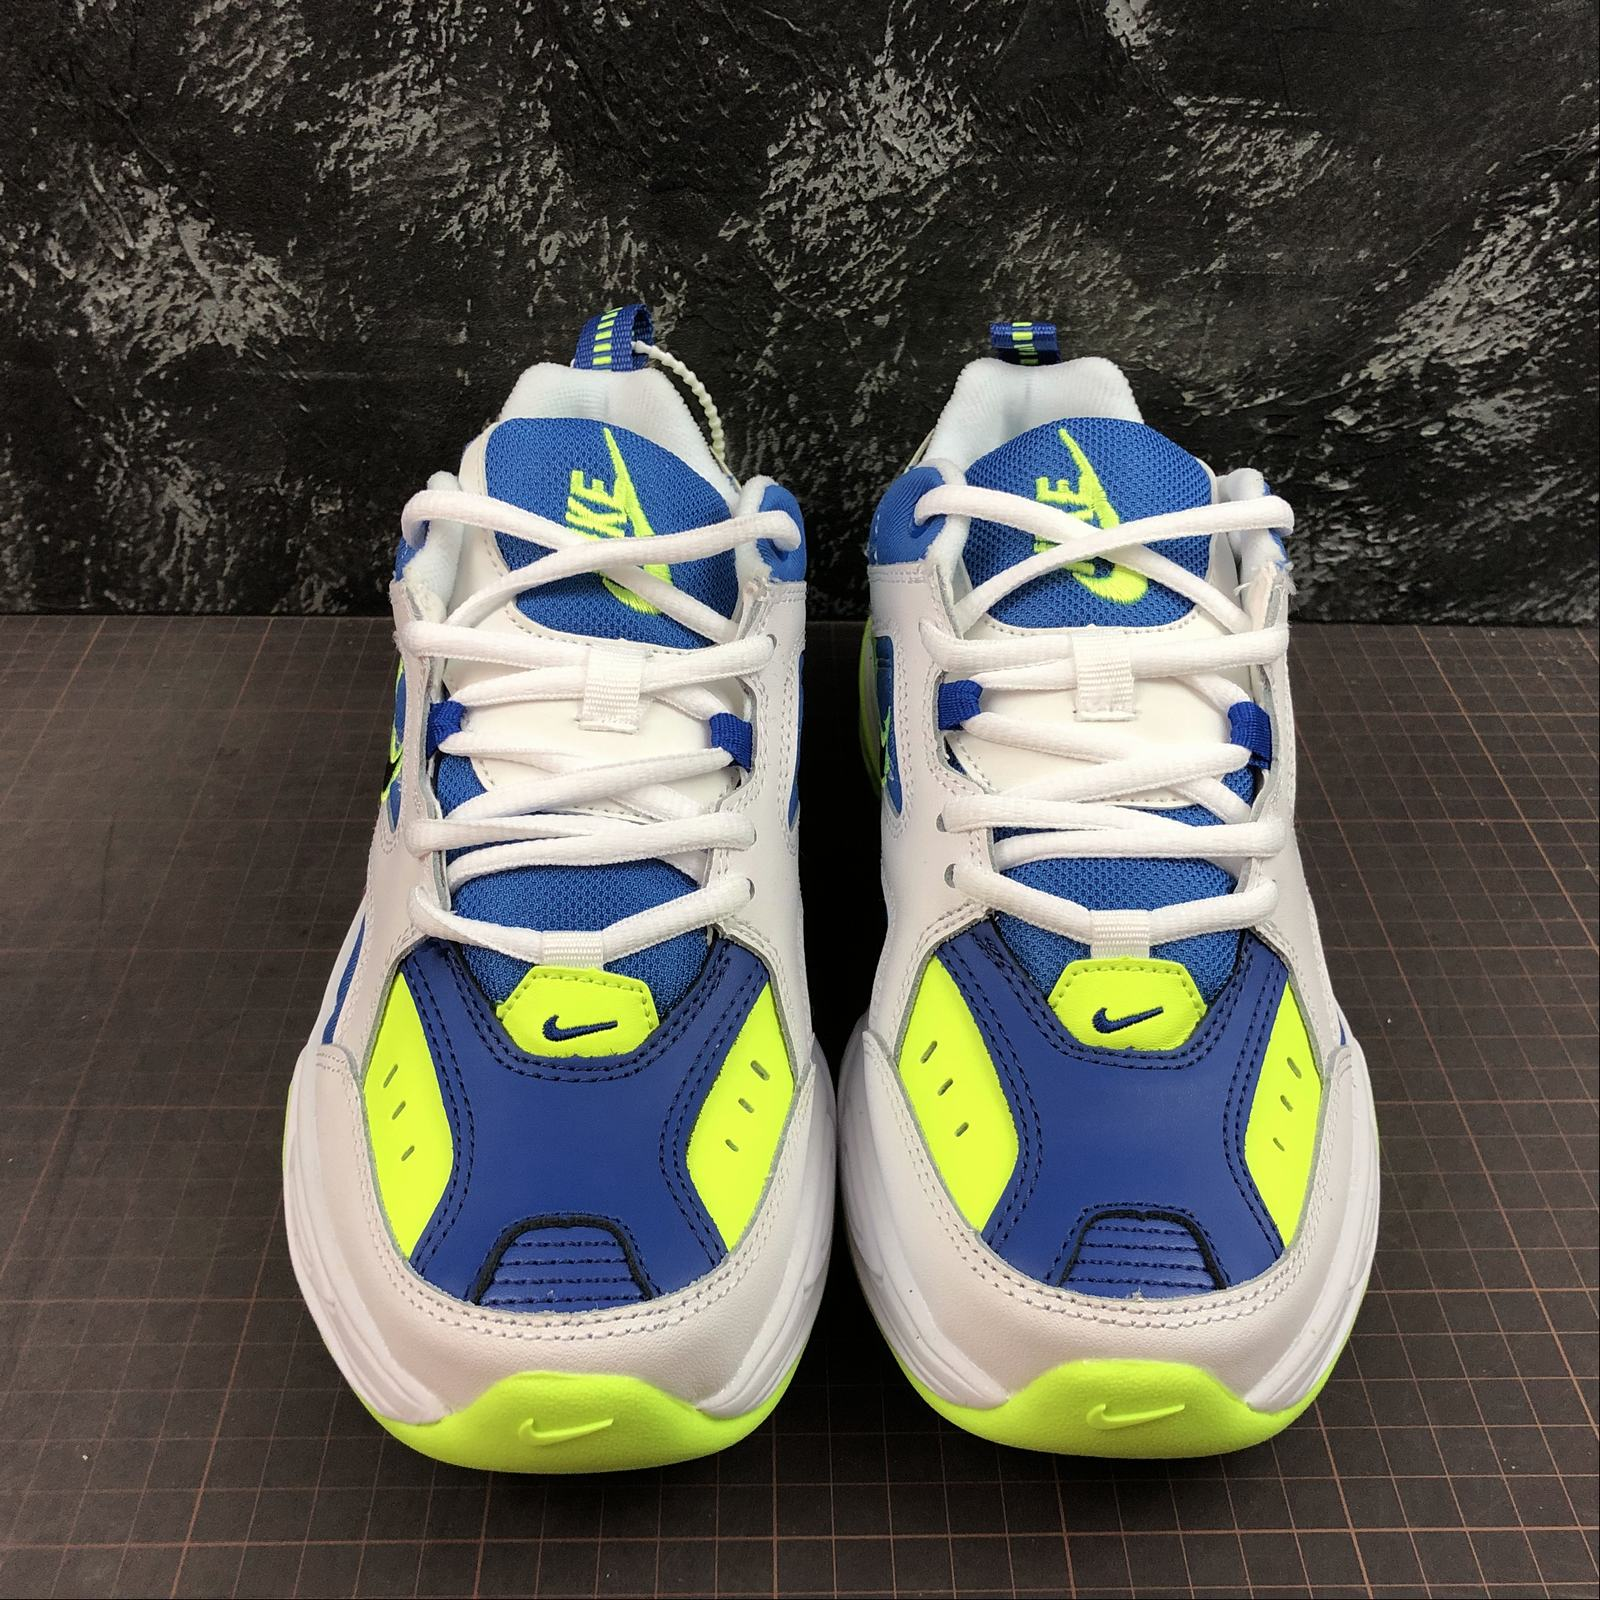 Мужские кроссовки Nike M2K Tekno Men White,Blue,Yellow - фото №3